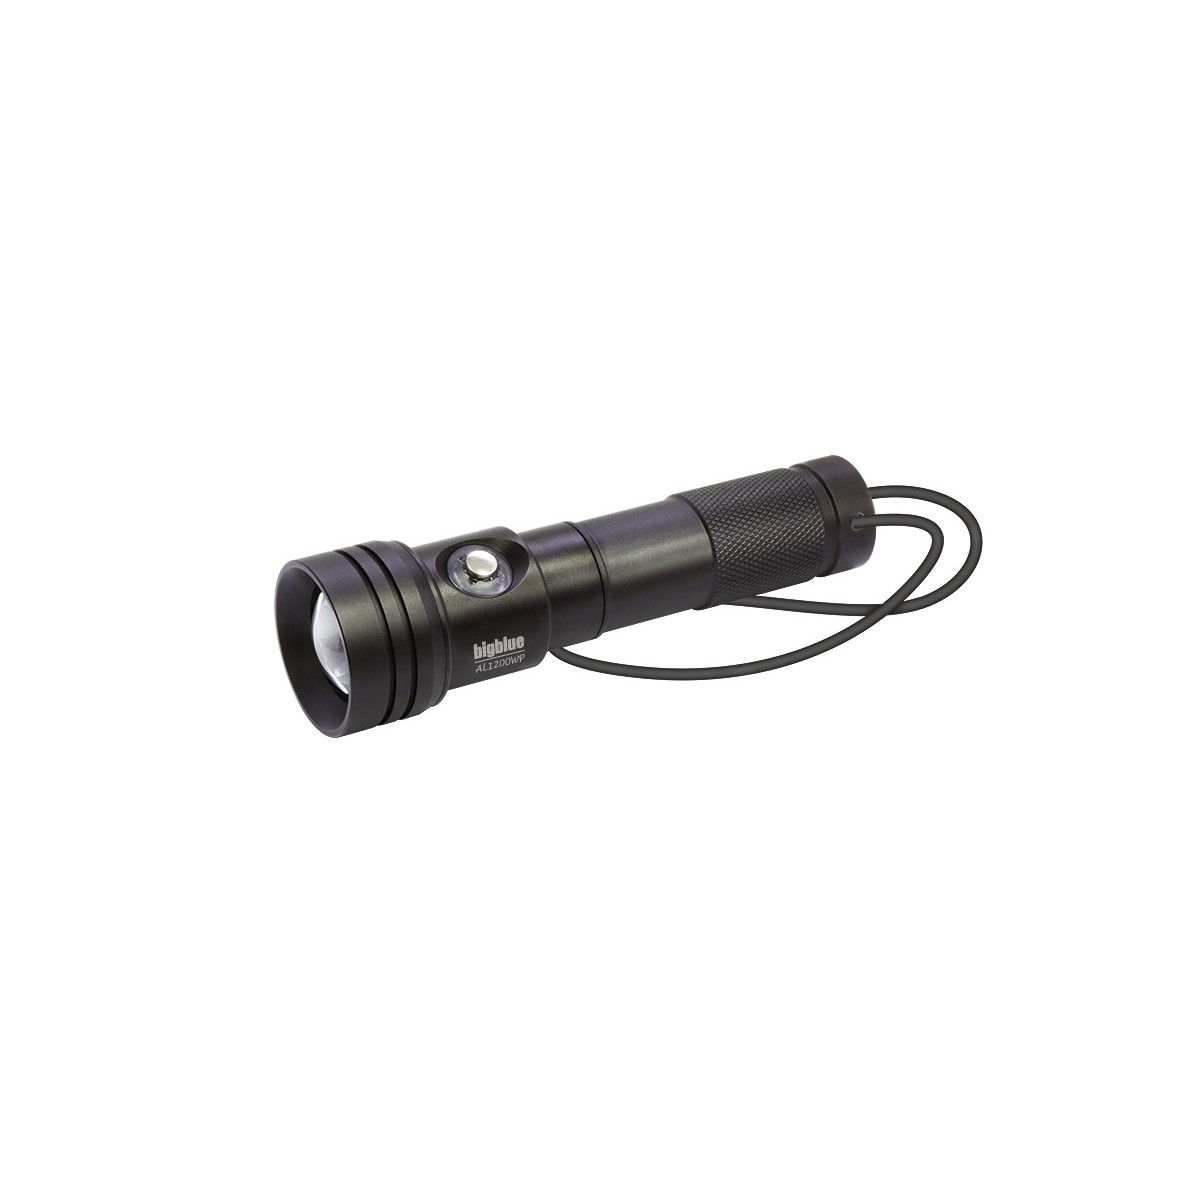 Bigblue 1200 Lumen Wide Beam (AL1200WP)